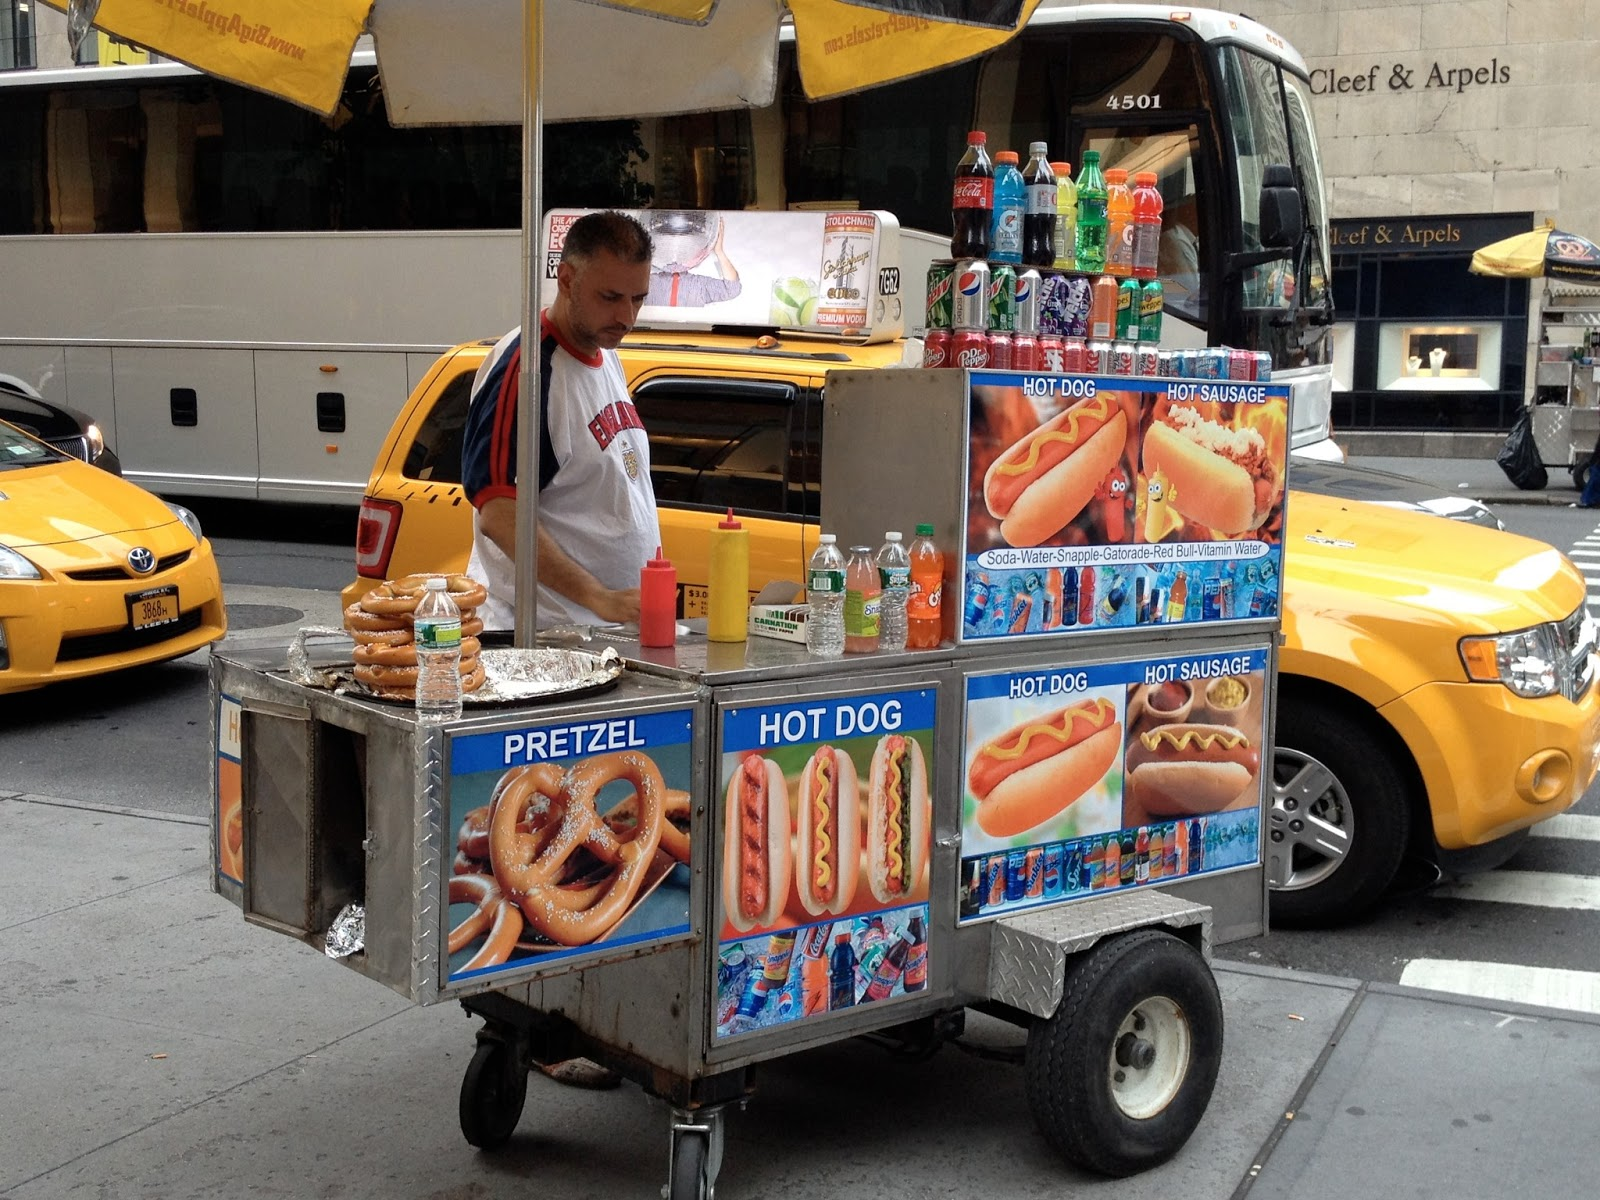 How Many Hot Dog Vendors In Nyc